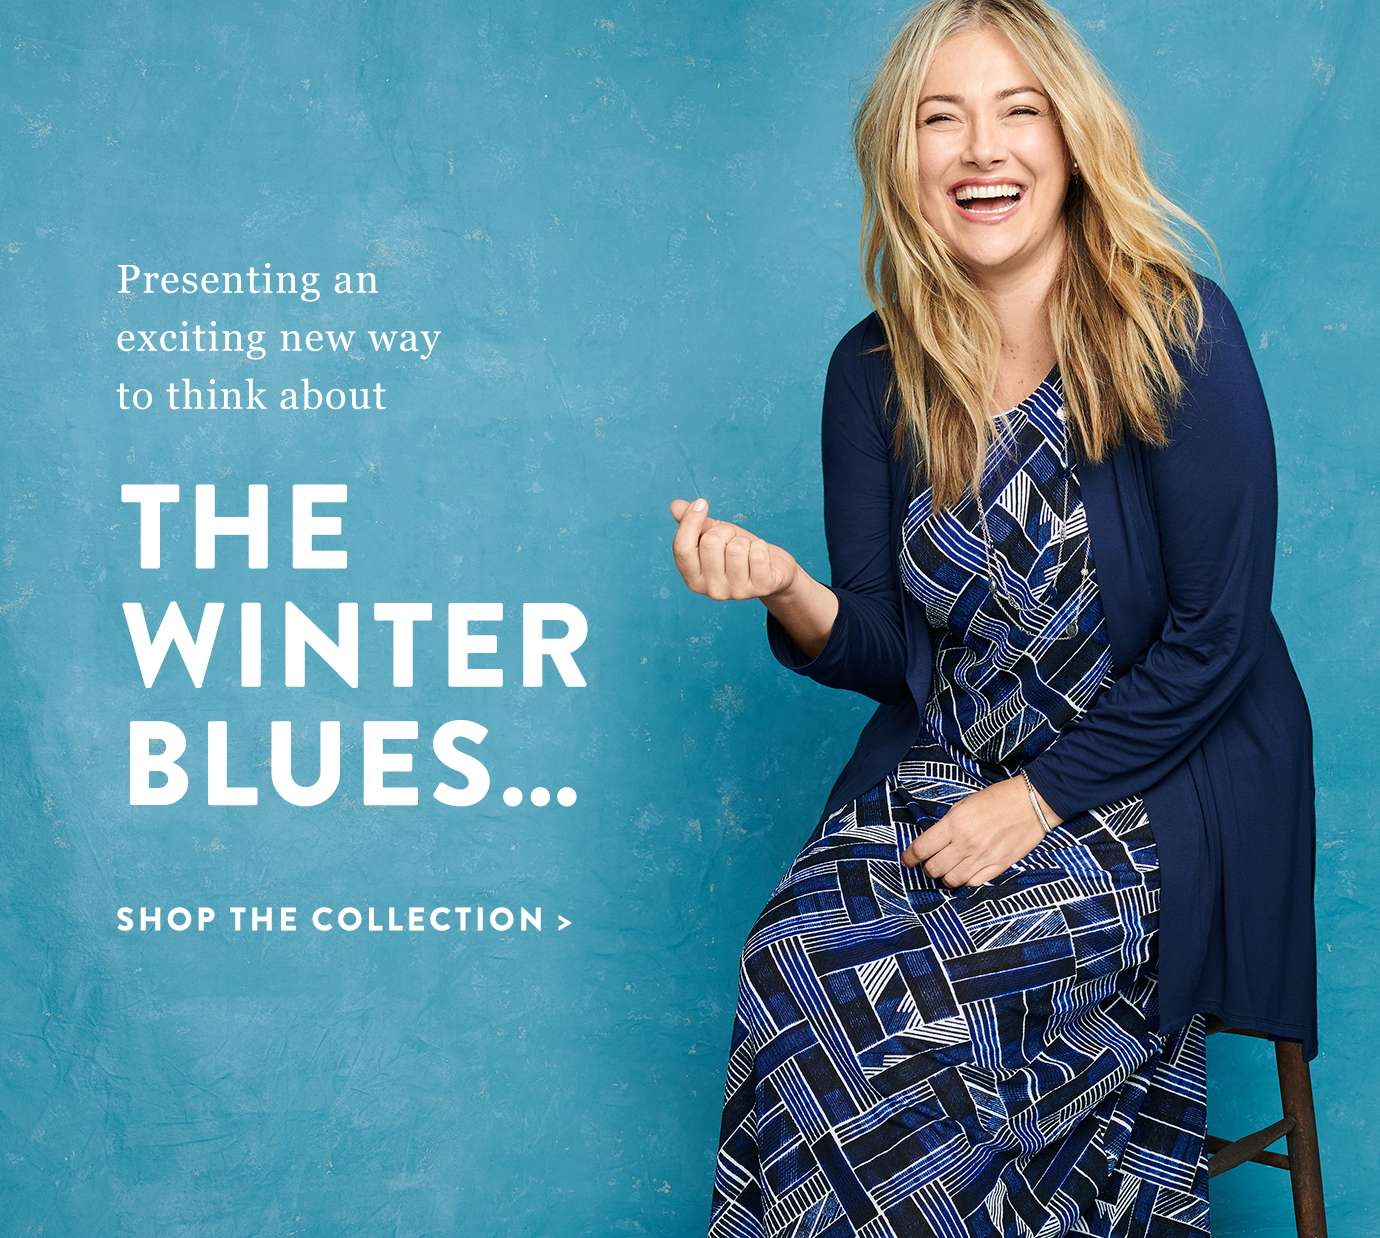 Presenting an exciting new way to think about the winter blues. Shop our New Blue Collection